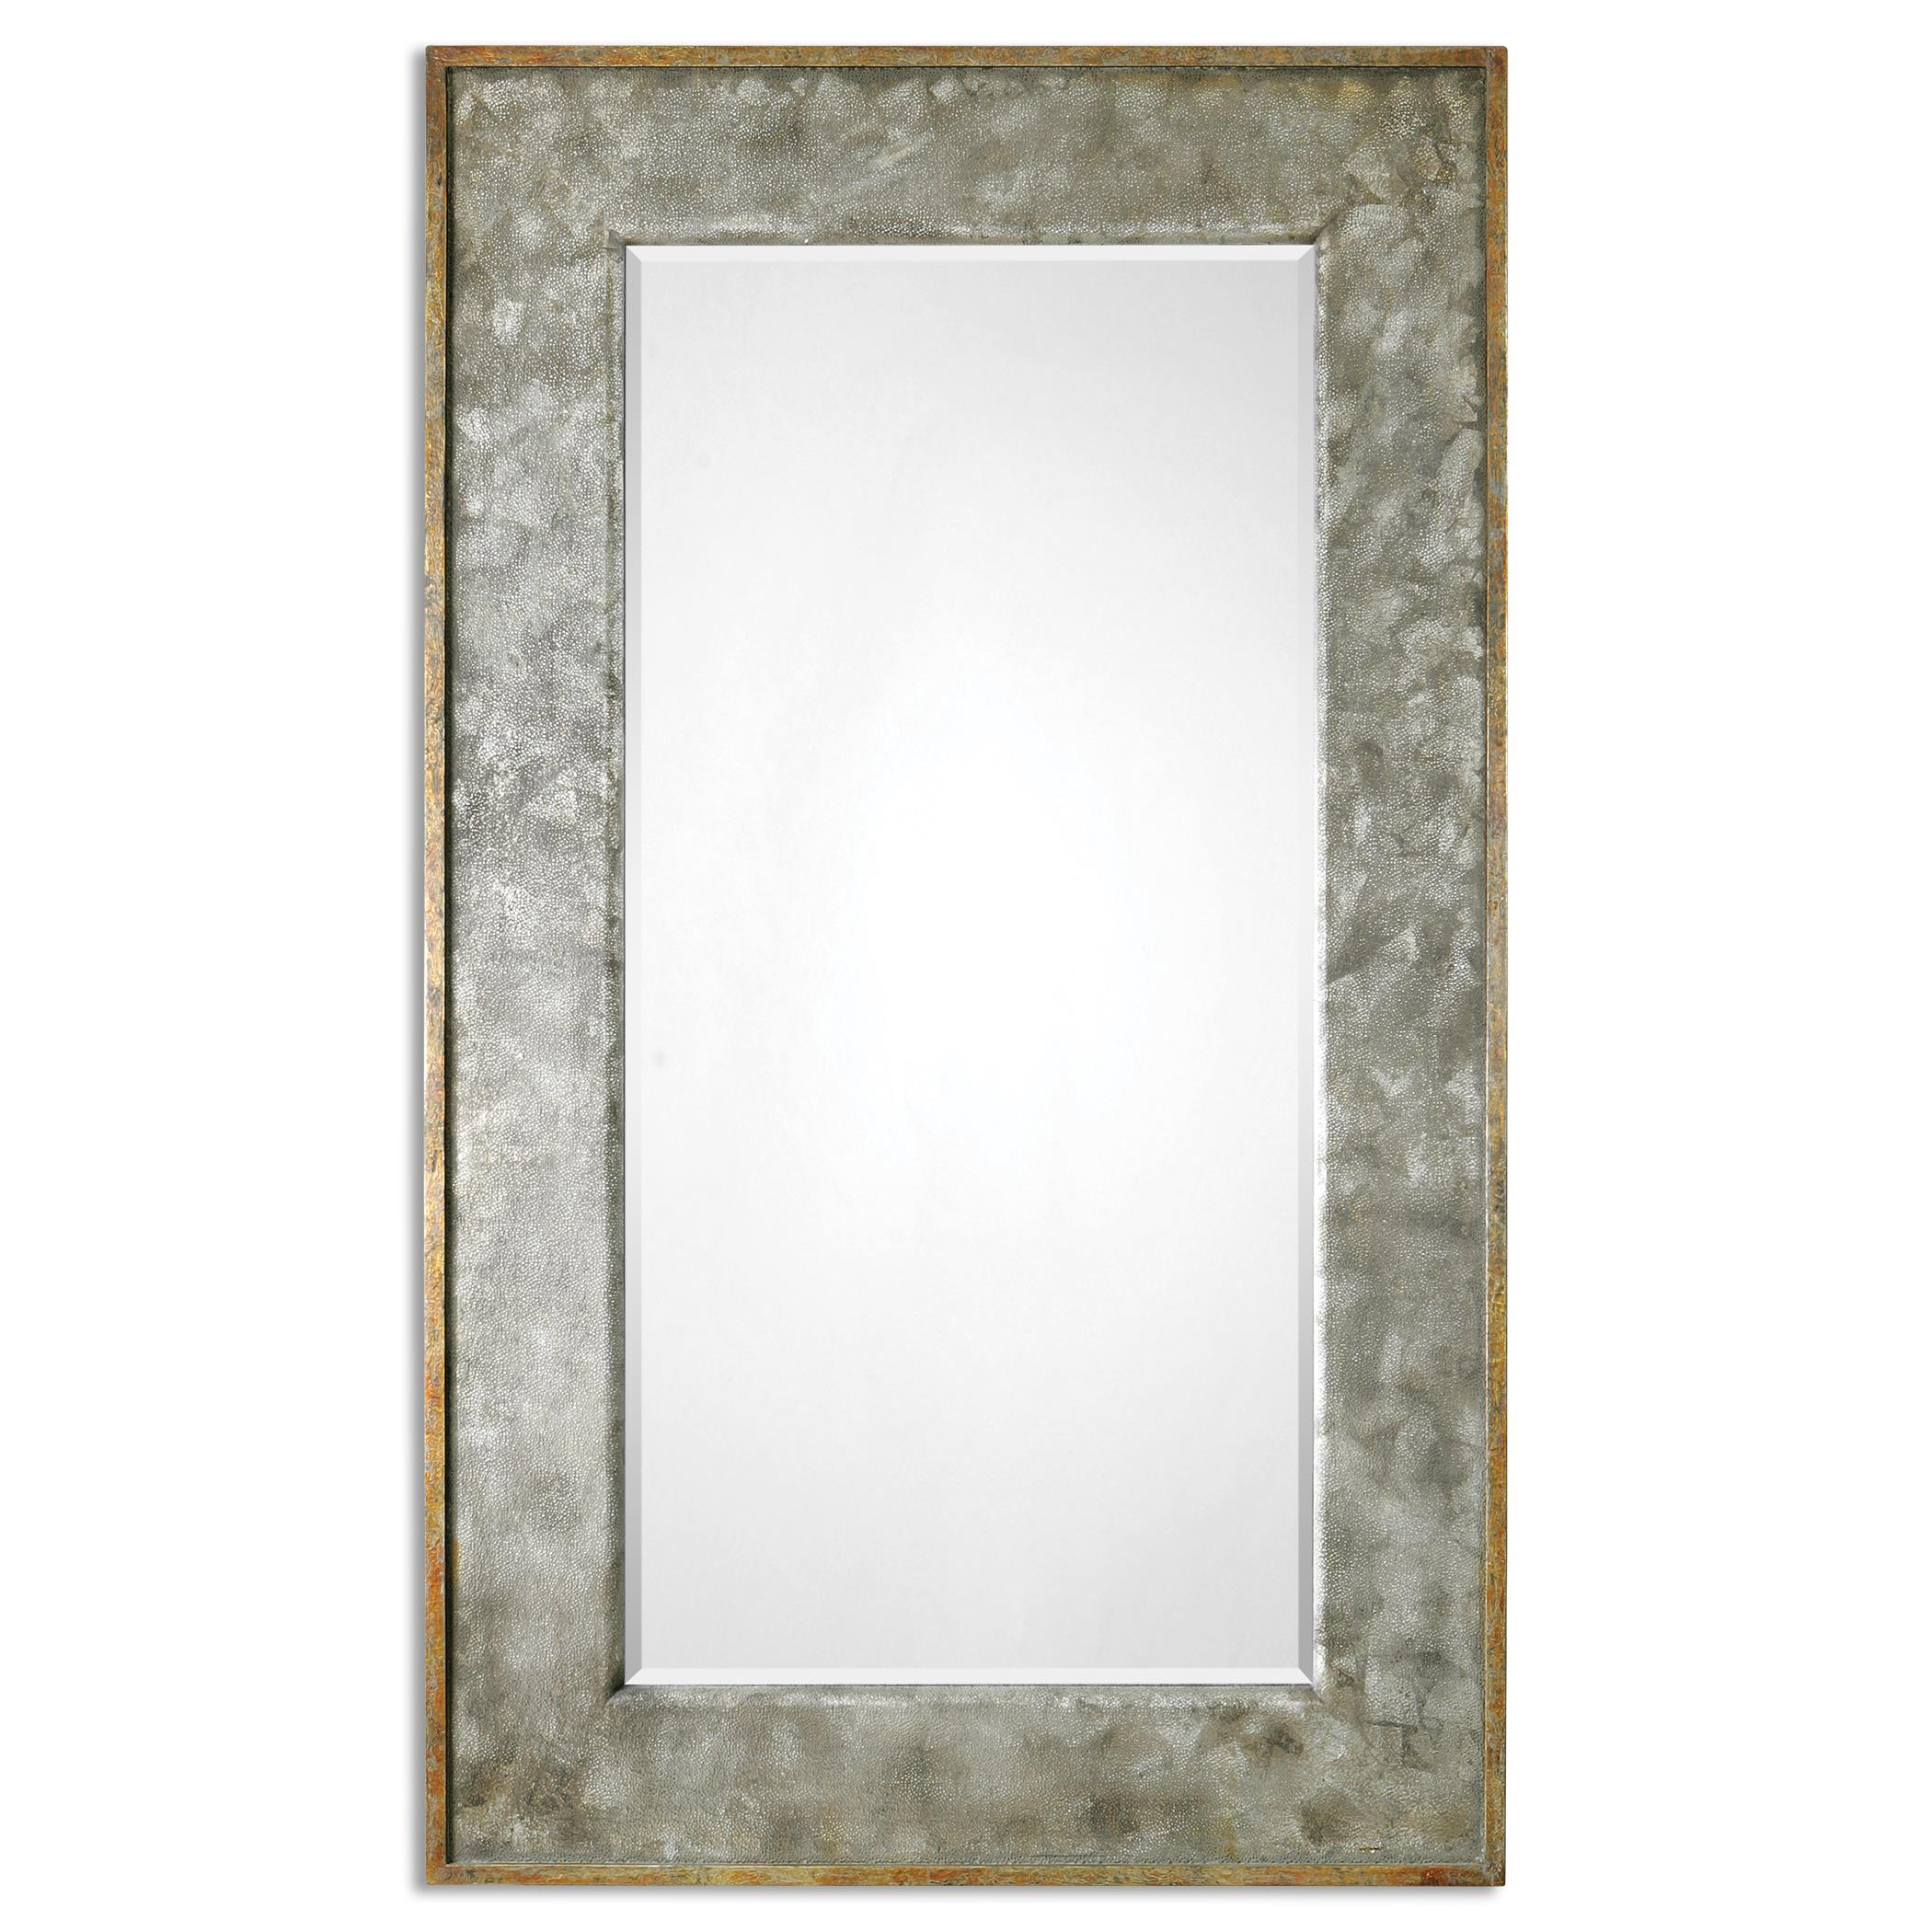 Uttermost Mirrors Leron Distressed Bronze Mirror - Item Number: 07691